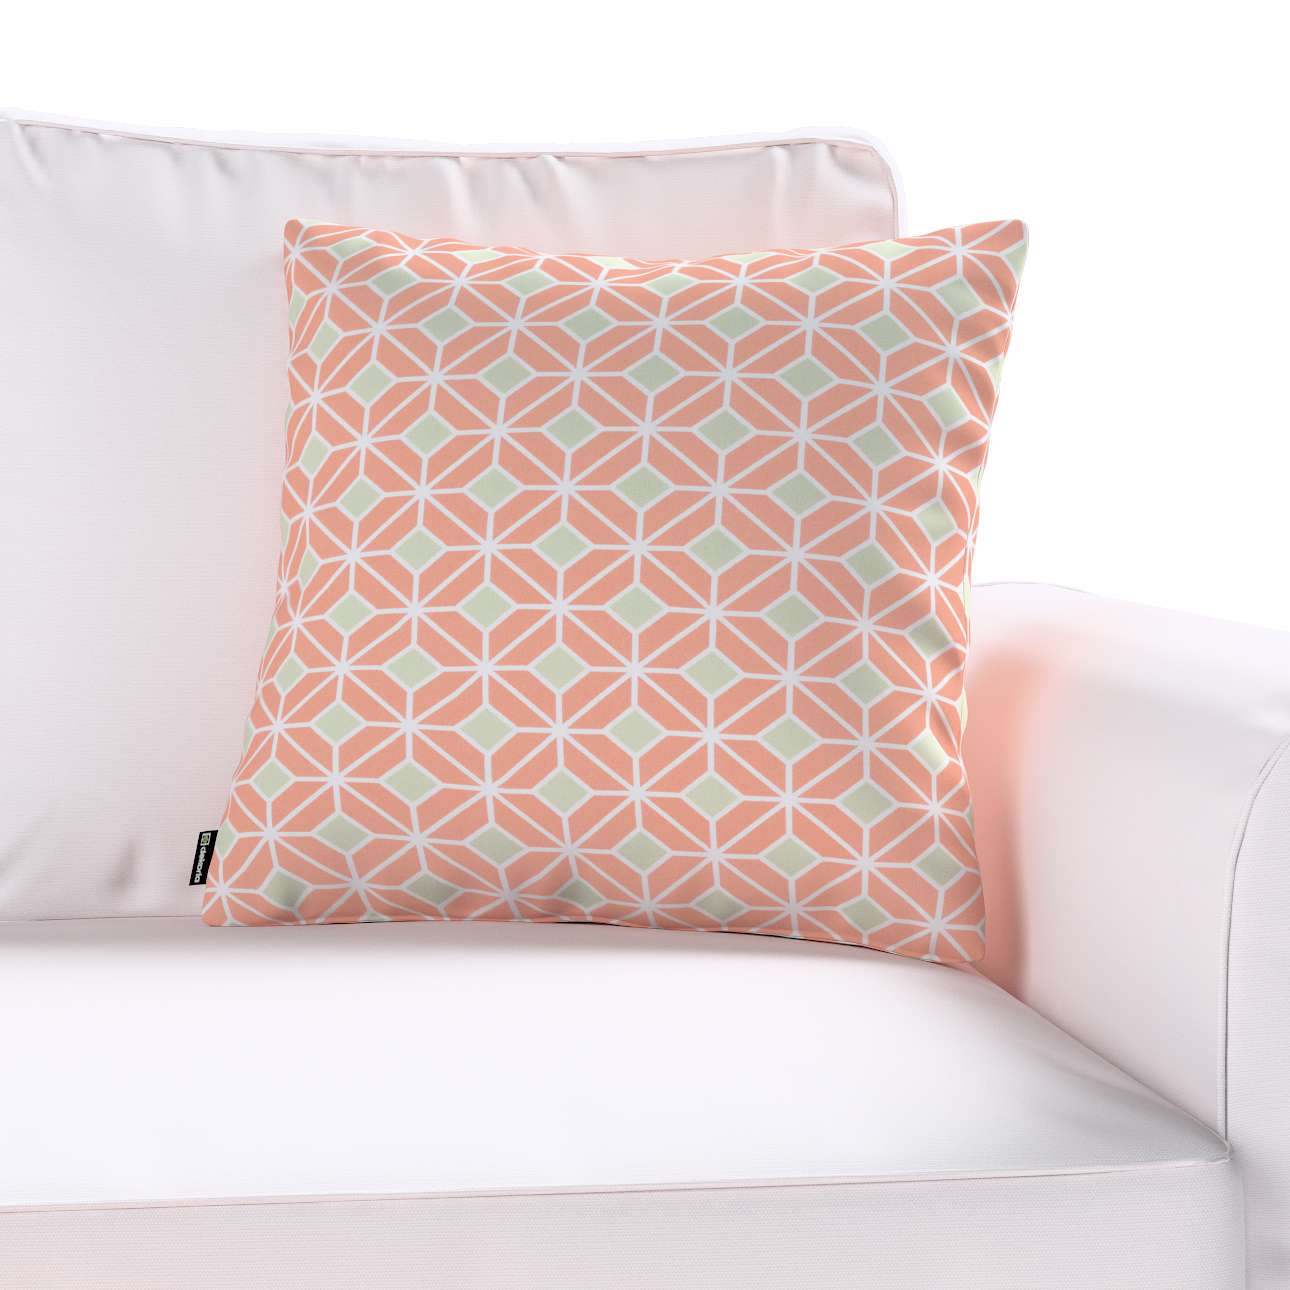 Kinga cushion cover 43 × 43 cm (17 × 17 inch) in collection Geometric, fabric: 141-48